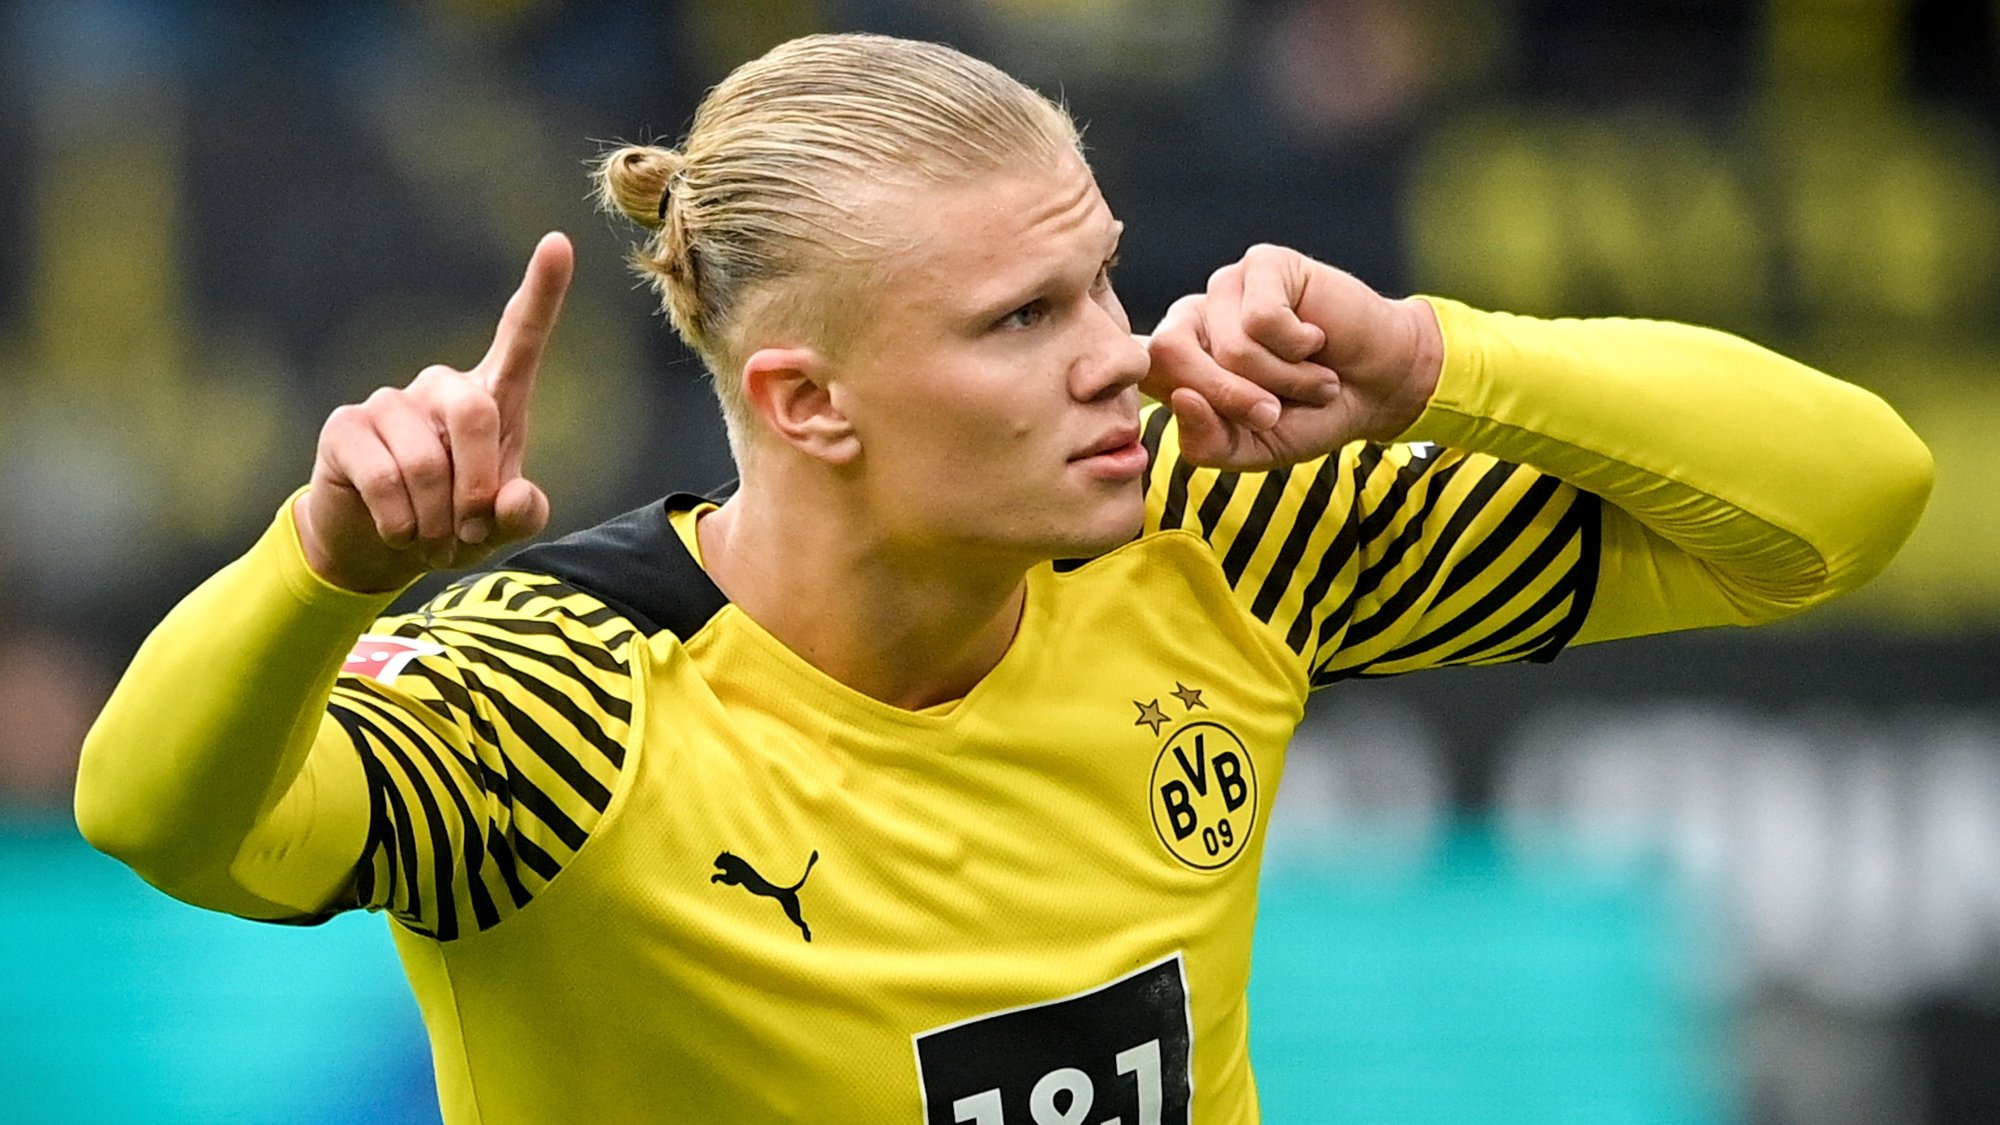 epaselect epa09527219 Dortmund's Erling Haaland celebrates after scoring the 2-0 lead from the penalty spot during the German Bundesliga soccer match between Borussia Dortmund and 1. FSV Mainz 05 at Signal Iduna Park in Dortmund, Germany, 16 October 2021.  EPA/SASCHA STEINBACH CONDITIONS - ATTENTION: The DFL regulations prohibit any use of photographs as image sequences and/or quasi-video.